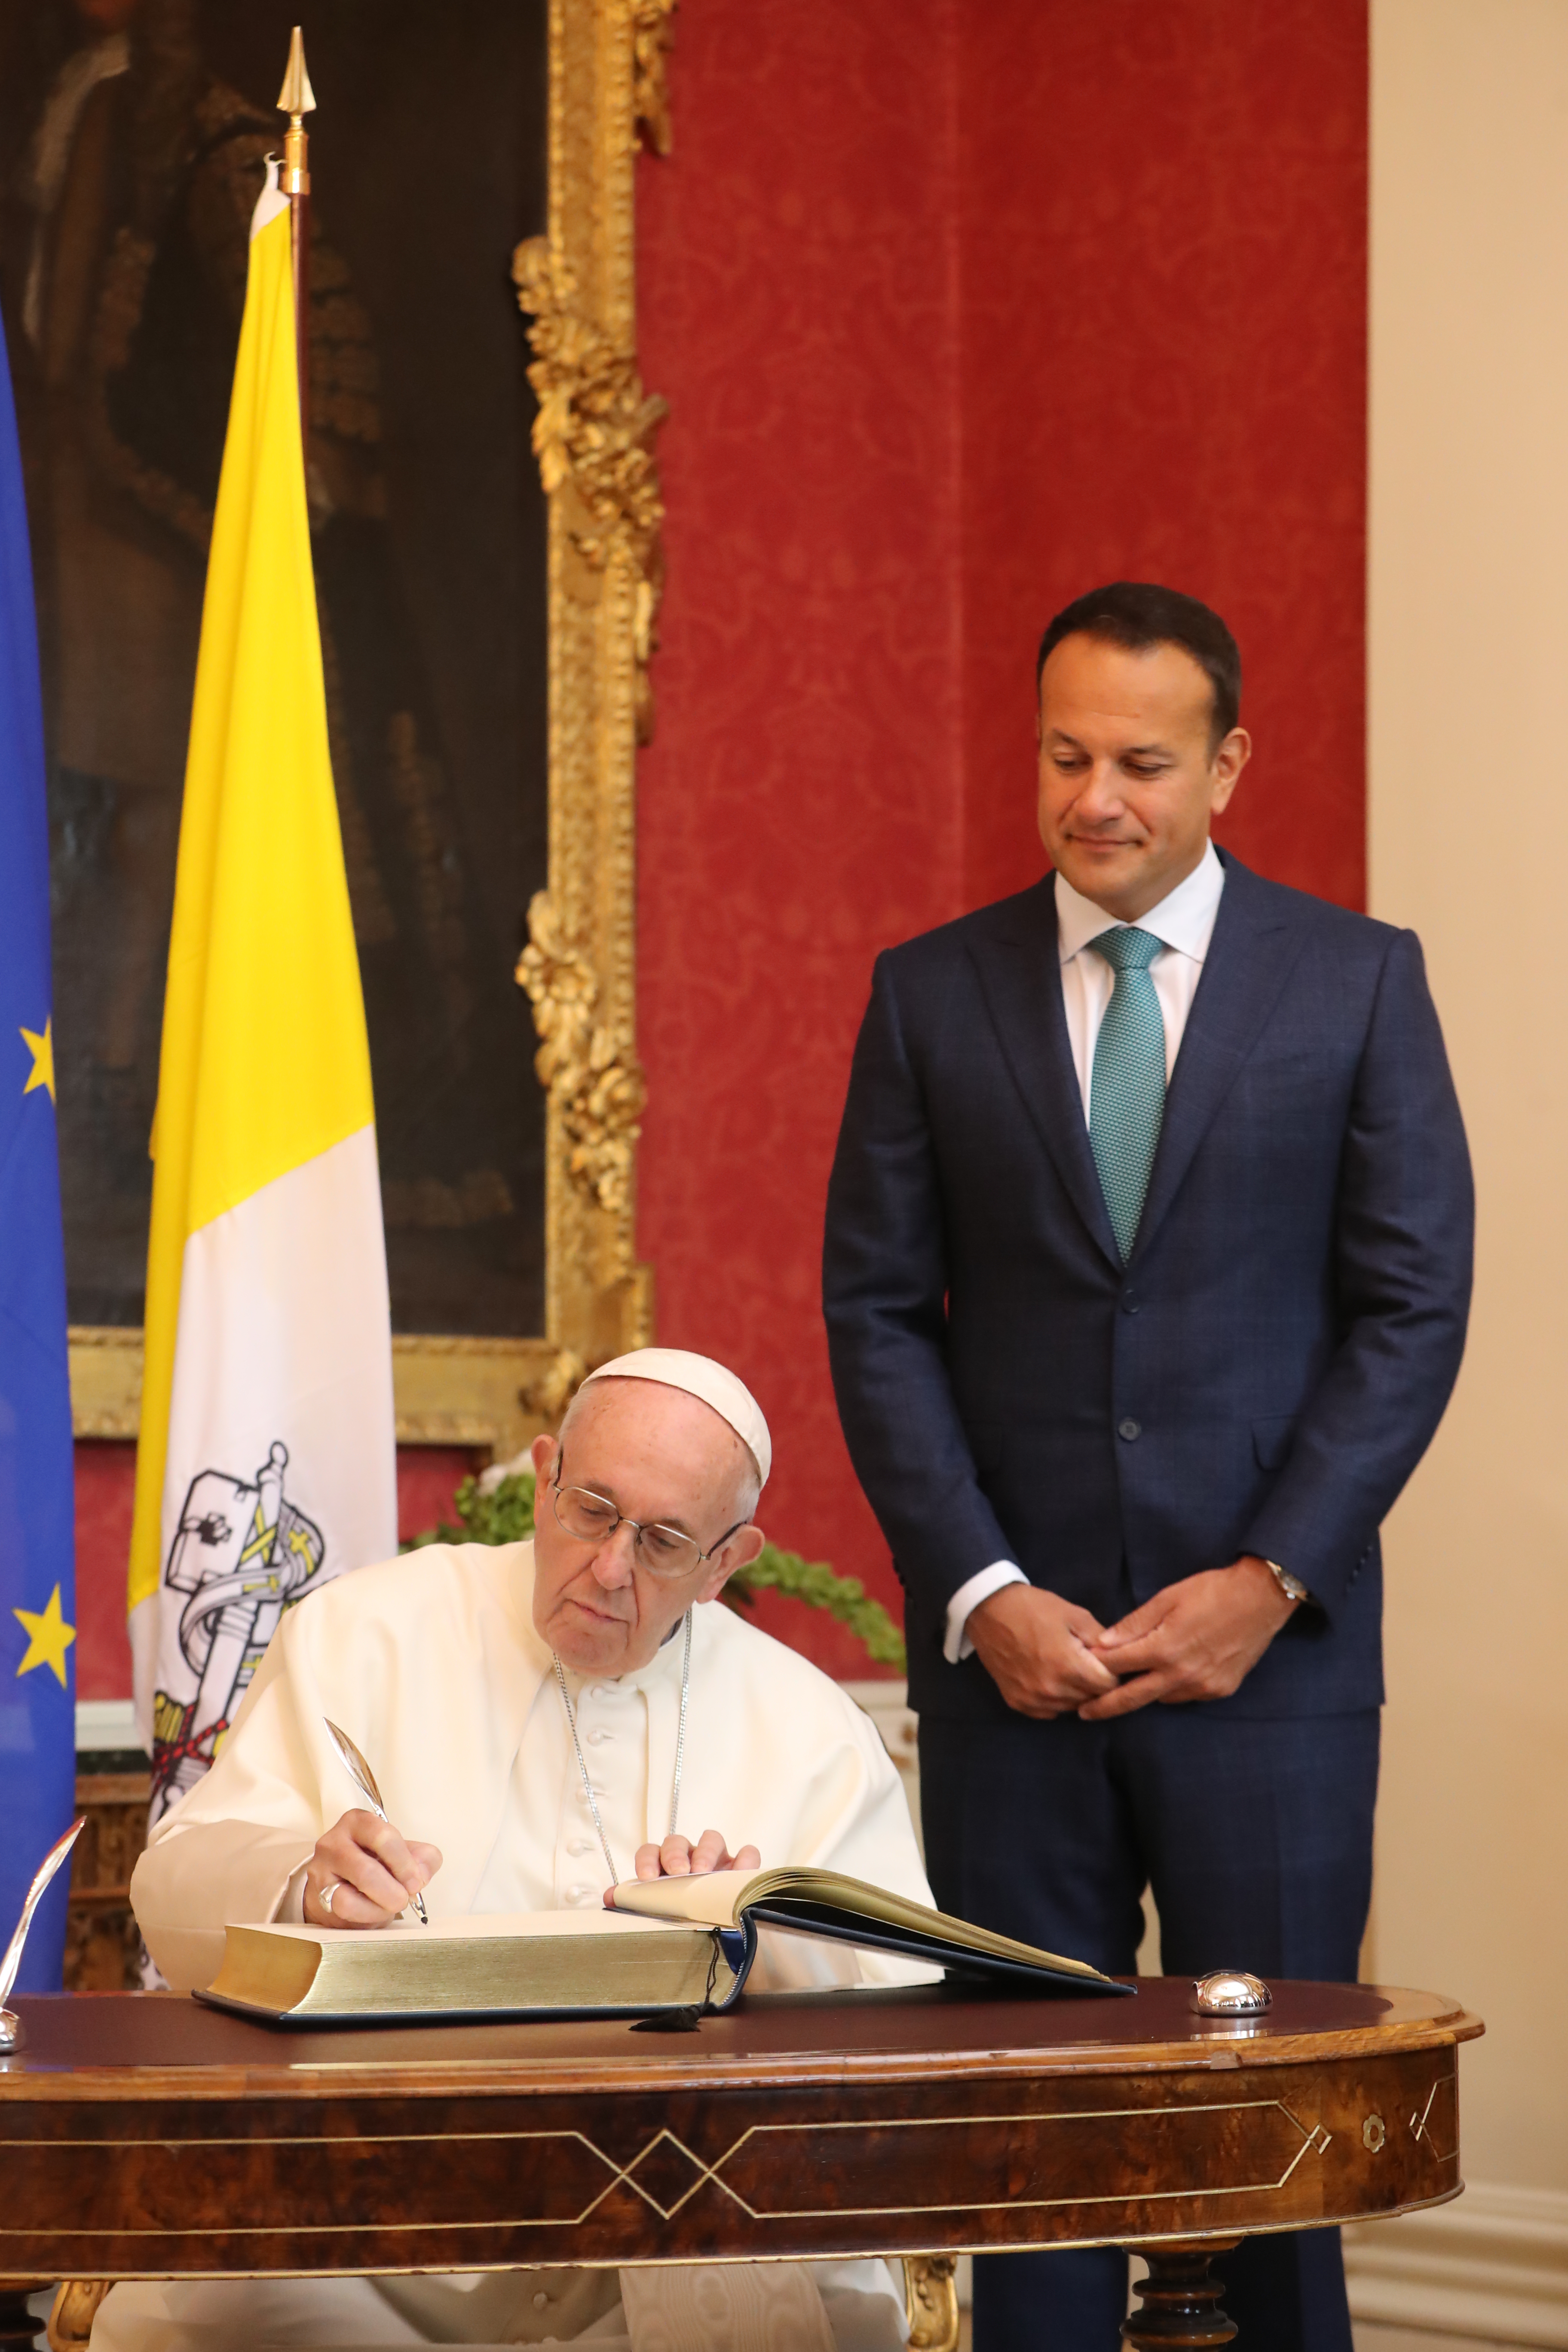 DUBLIN, IRELAND - AUGUST 25: Pope Francis signs the arrivals book as he meets with Taoiseach Leo Varadkar at Dublin Castle as part of his visit to Ireland on August 25, 2018 in Dublin, Ireland. Pope Francis is the 266th Catholic Pope and current sovereign of the Vatican. His visit, the first by a Pope since John Paul II's in 1979, is expected to attract hundreds of thousands of Catholics to a series of events in Dublin and Knock. During his visit he will have private meetings with victims of sexual abuse by Catholic clergy. (Photo by NIall Carson - Pool/Getty Images)